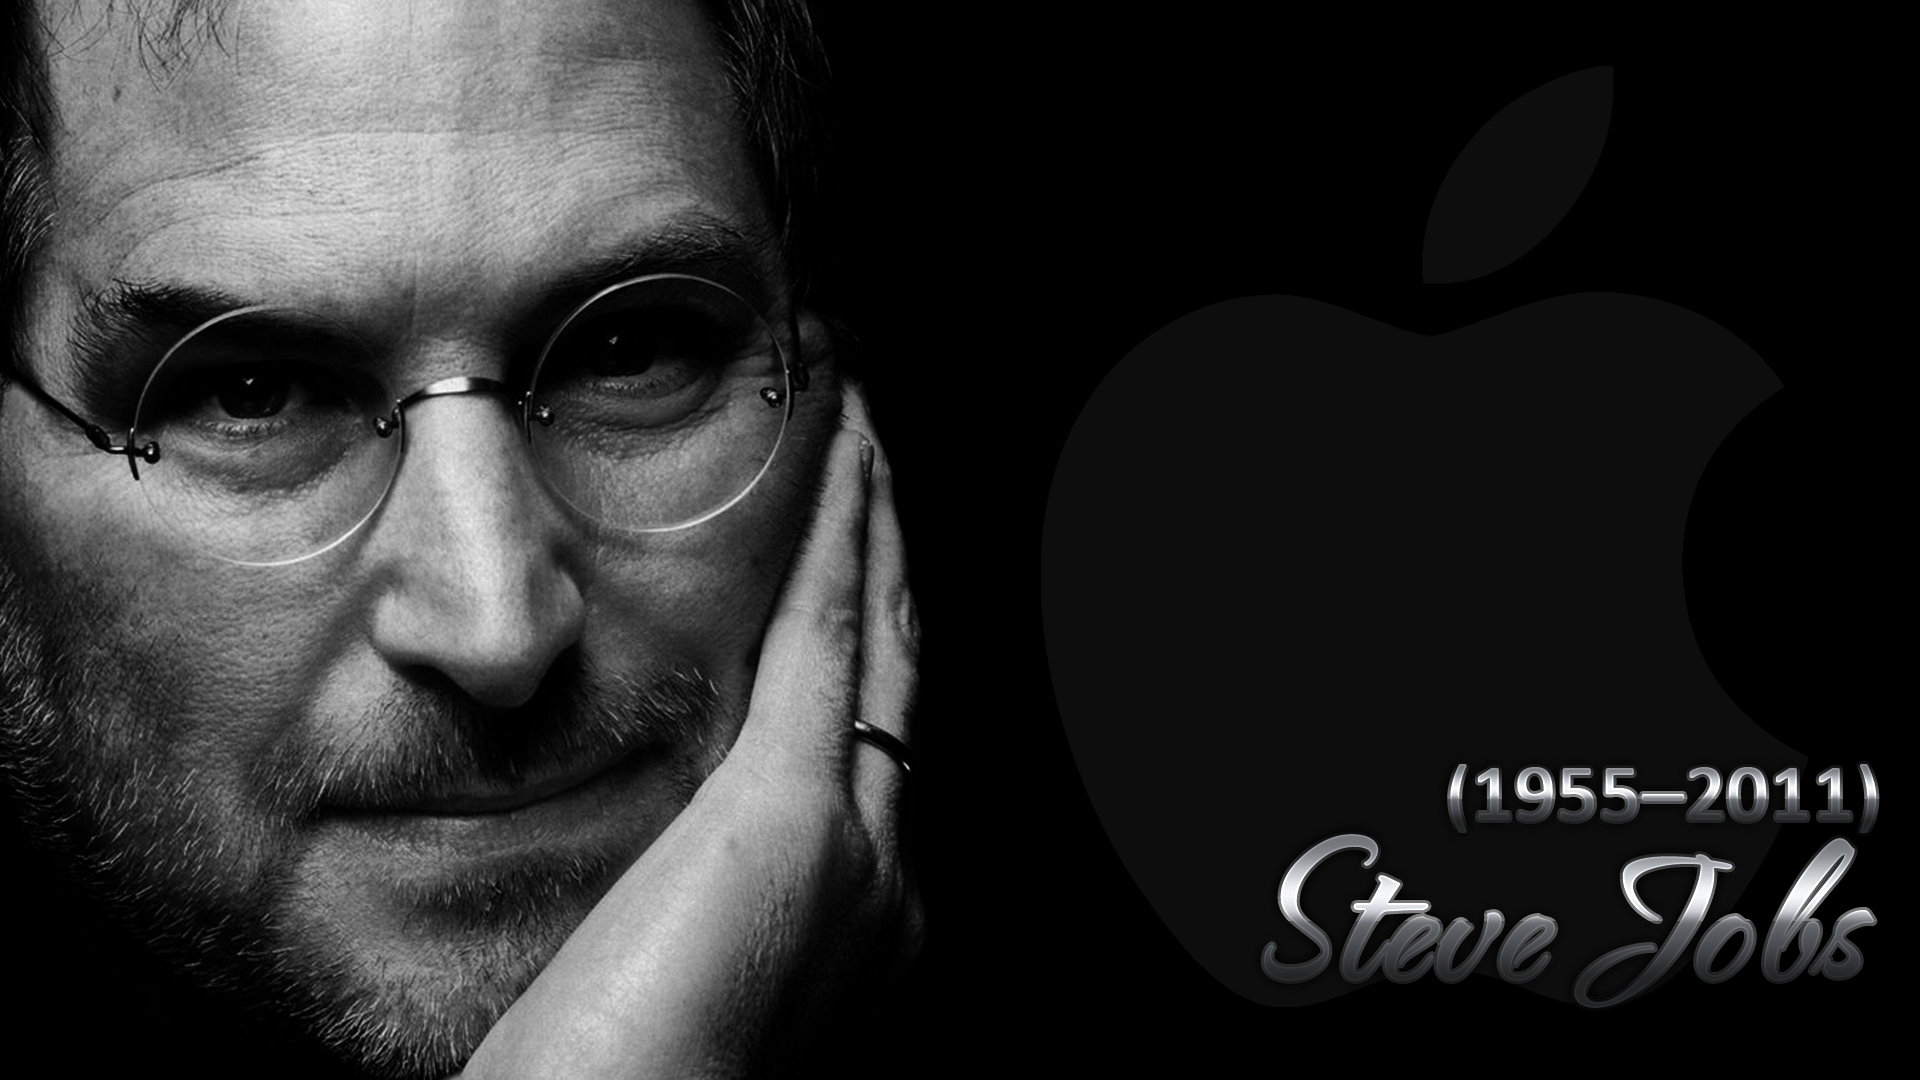 Steve Jobs Walpaper Black by renatofraccari